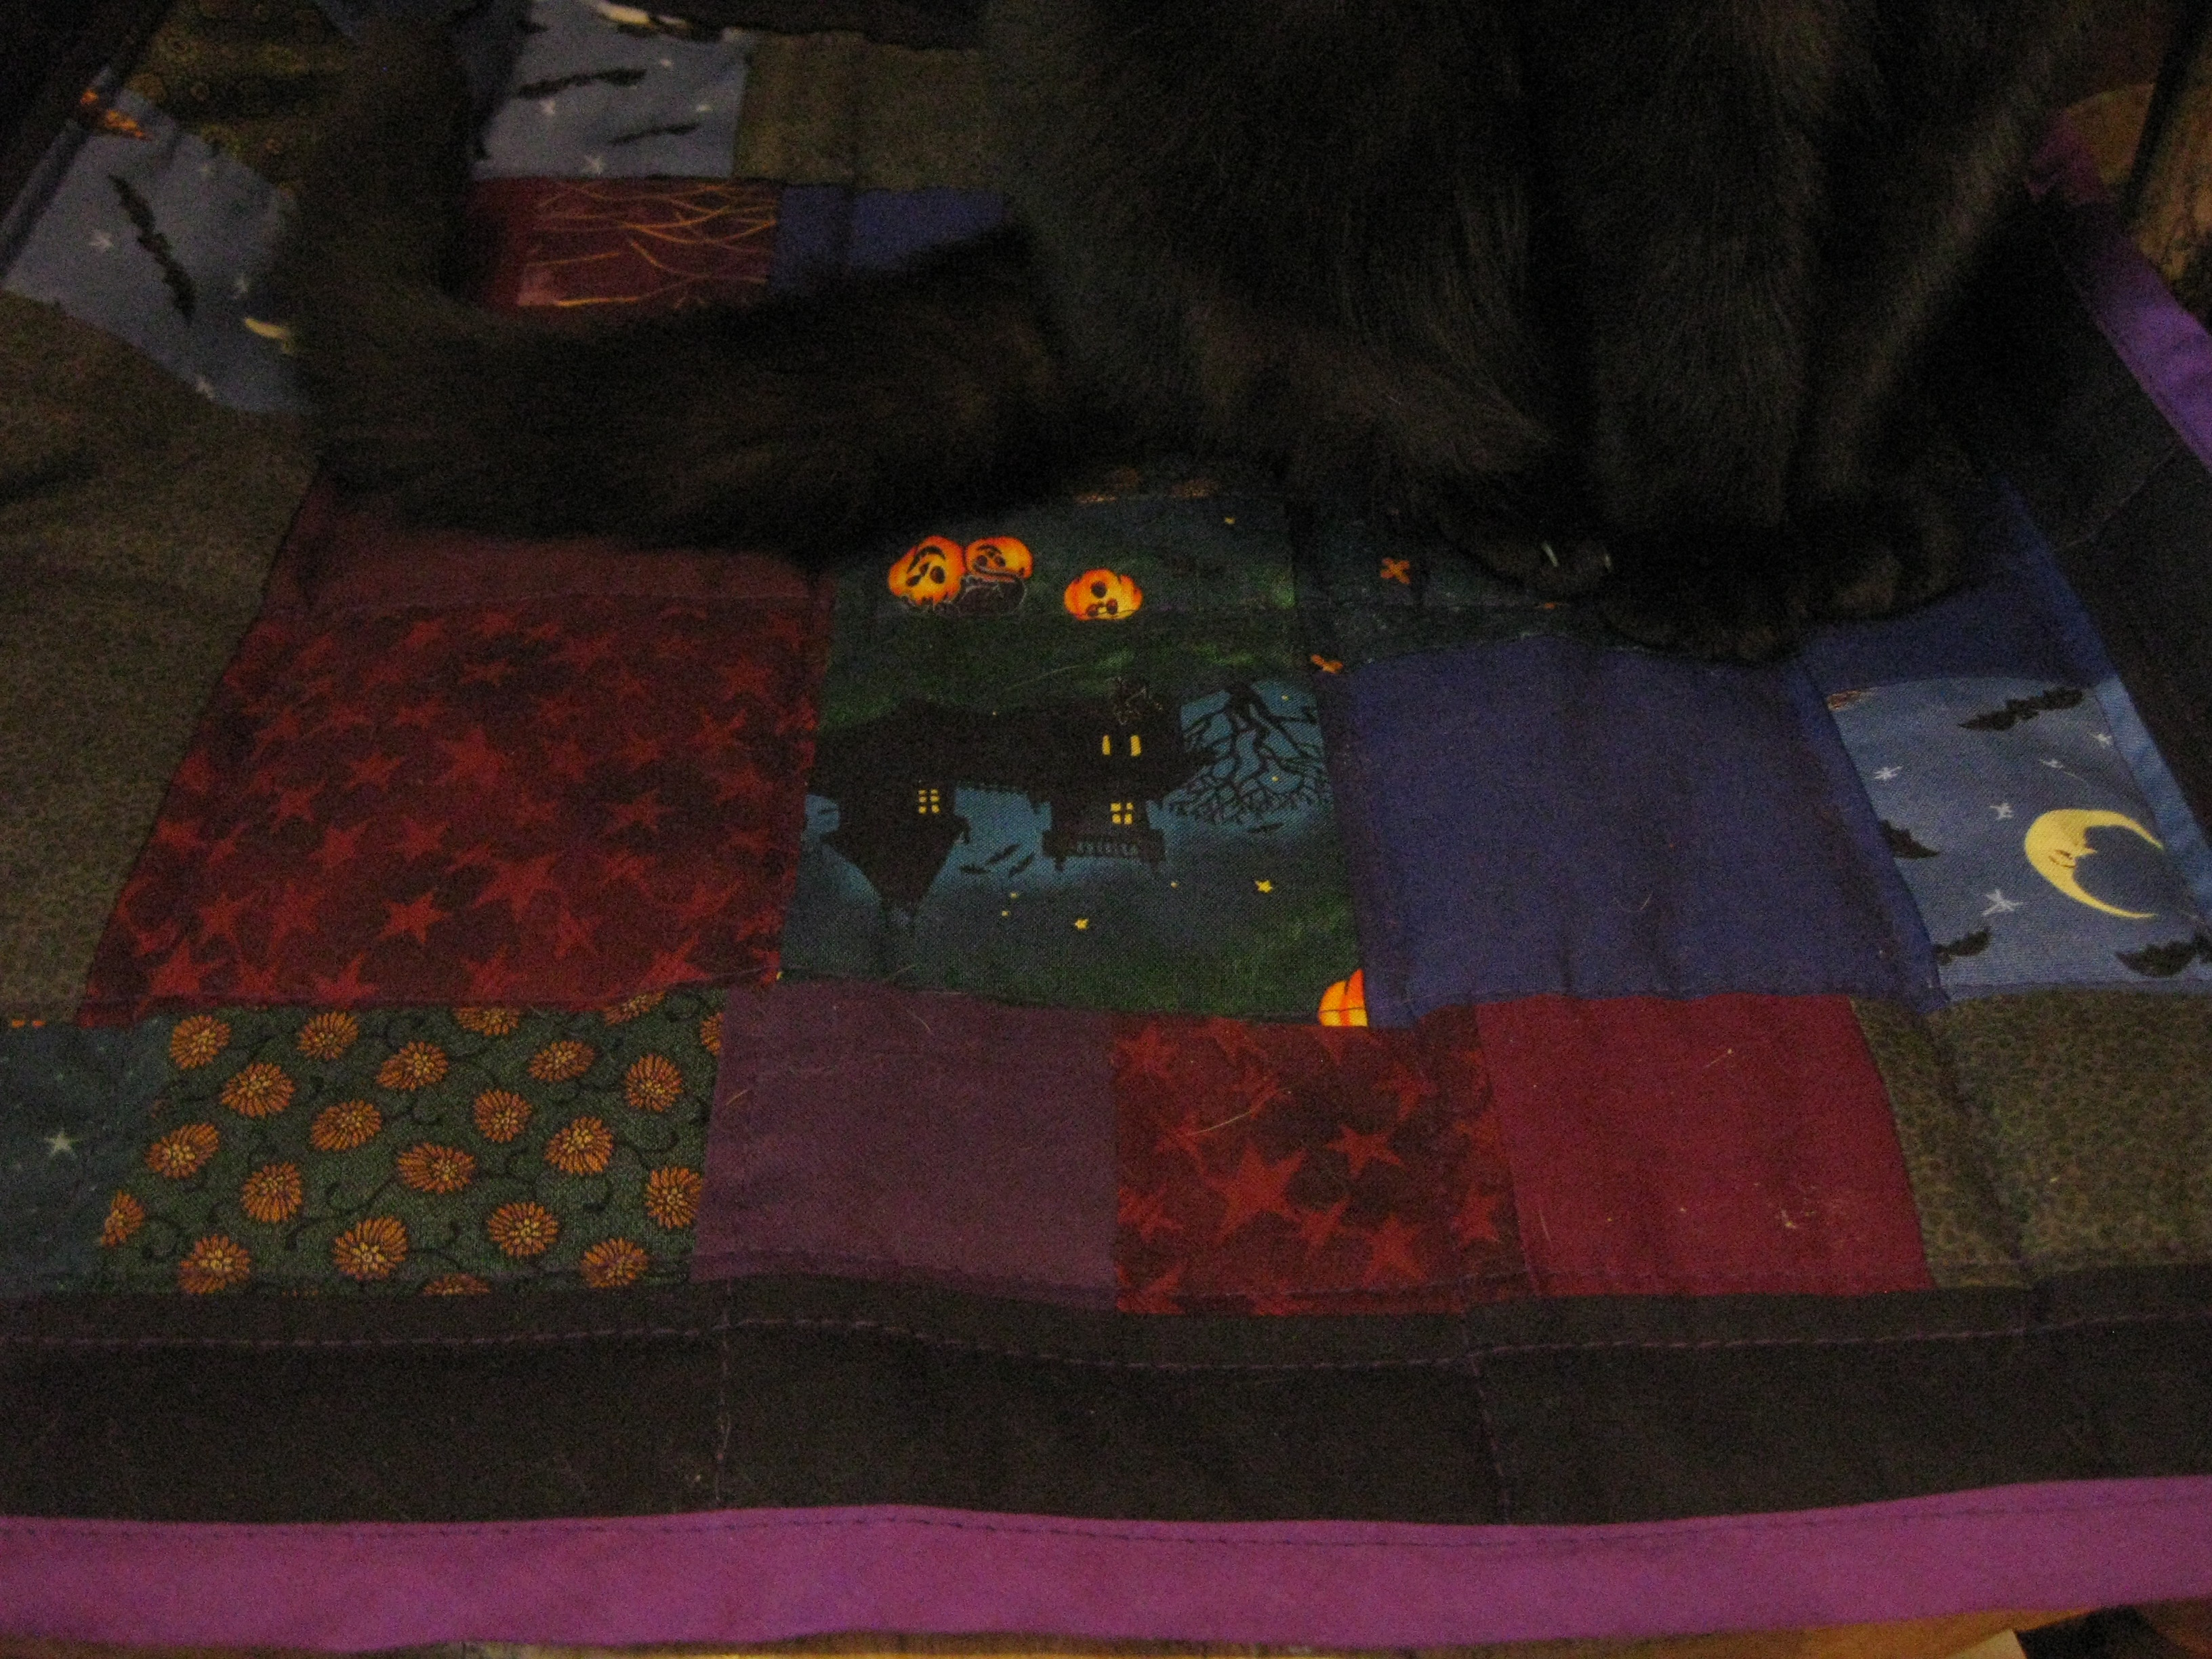 Paws and Quilt.